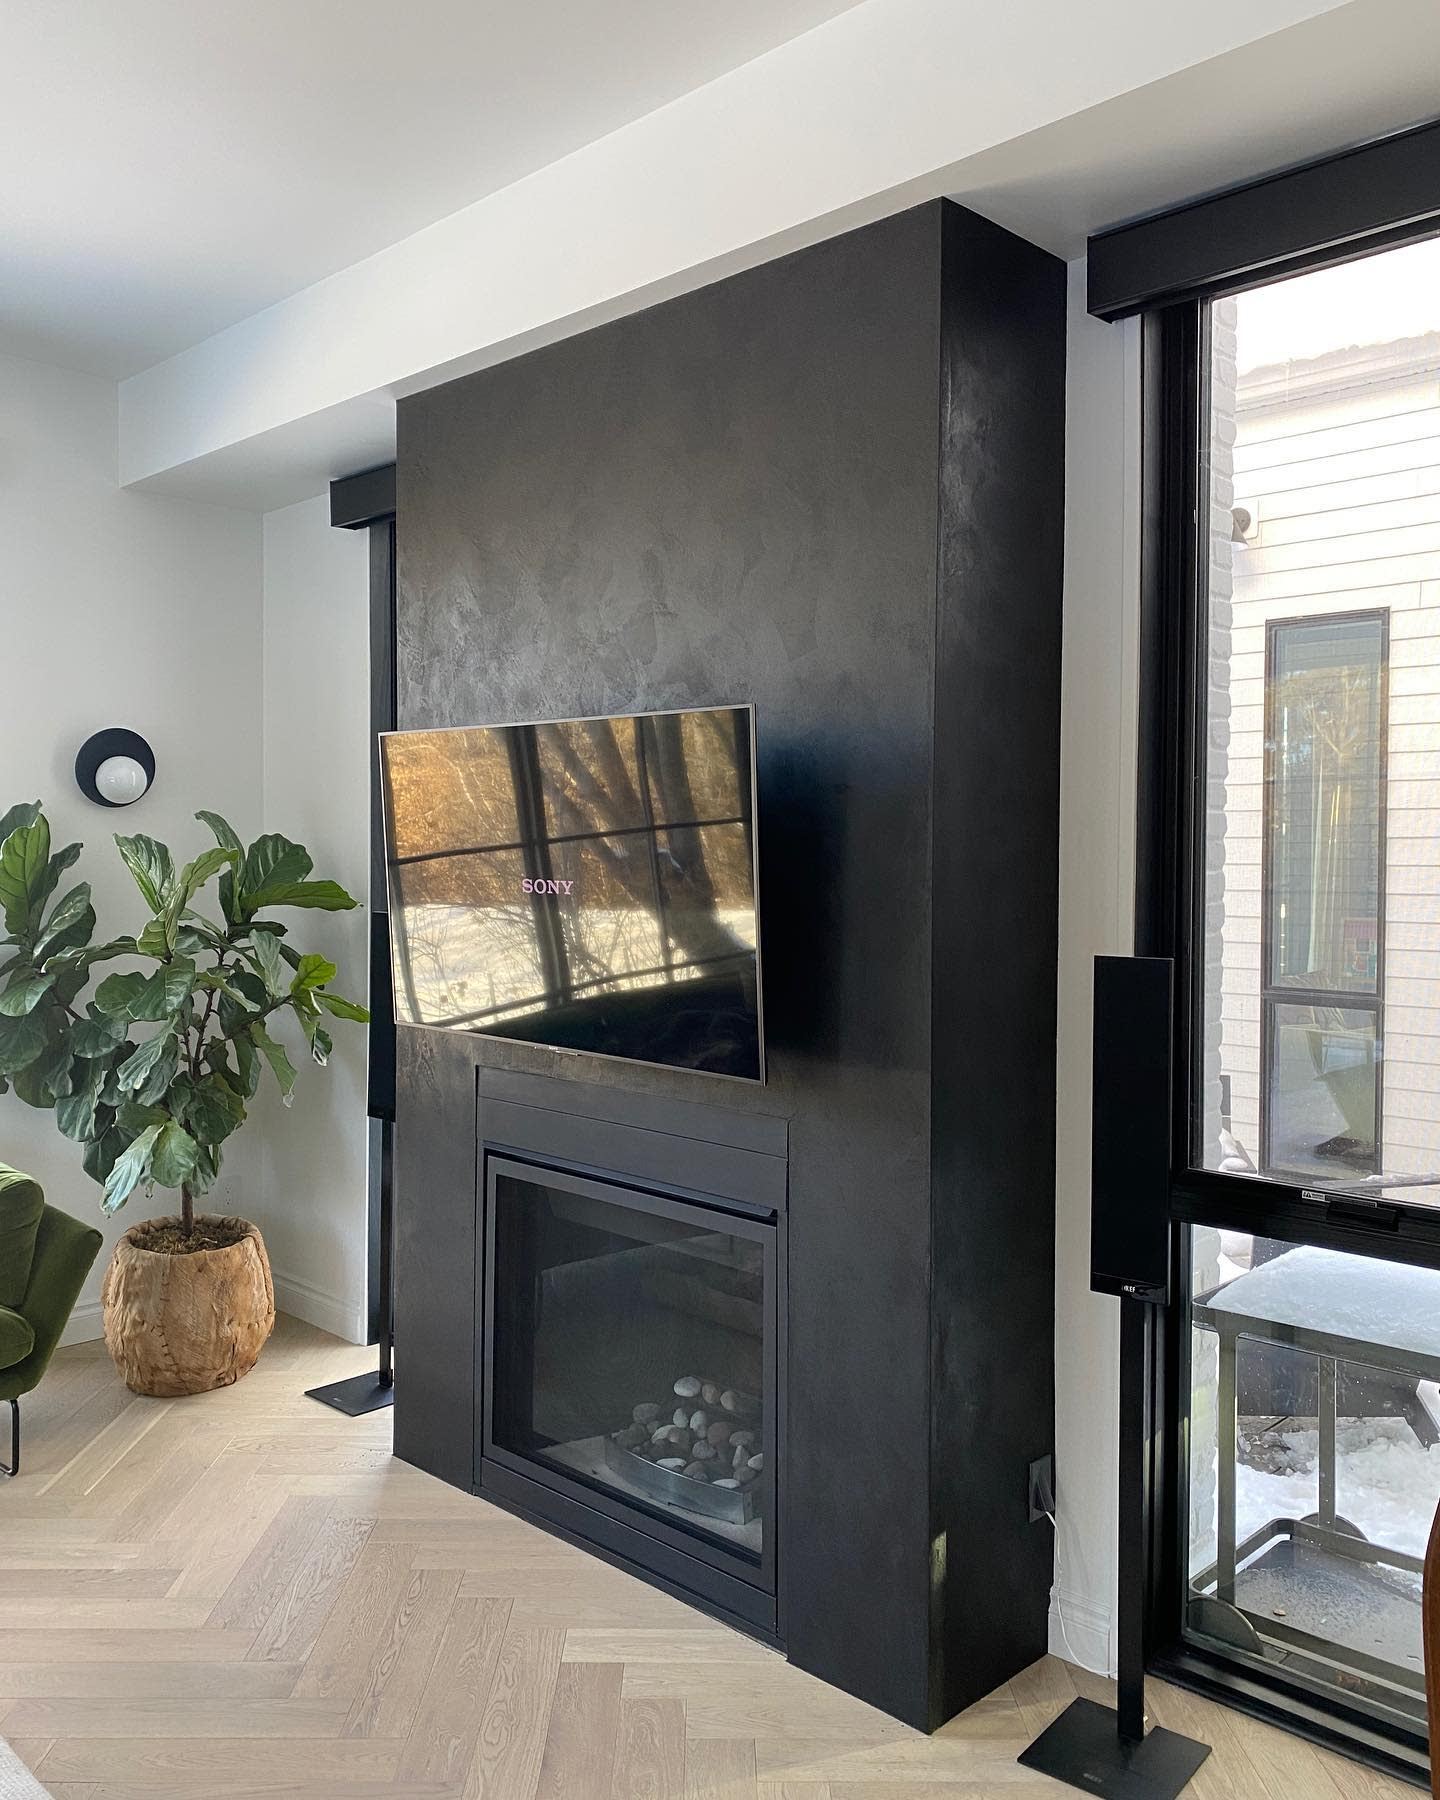 Concrete Fireplace Wall Ideas 2 -surfacedesign.ca